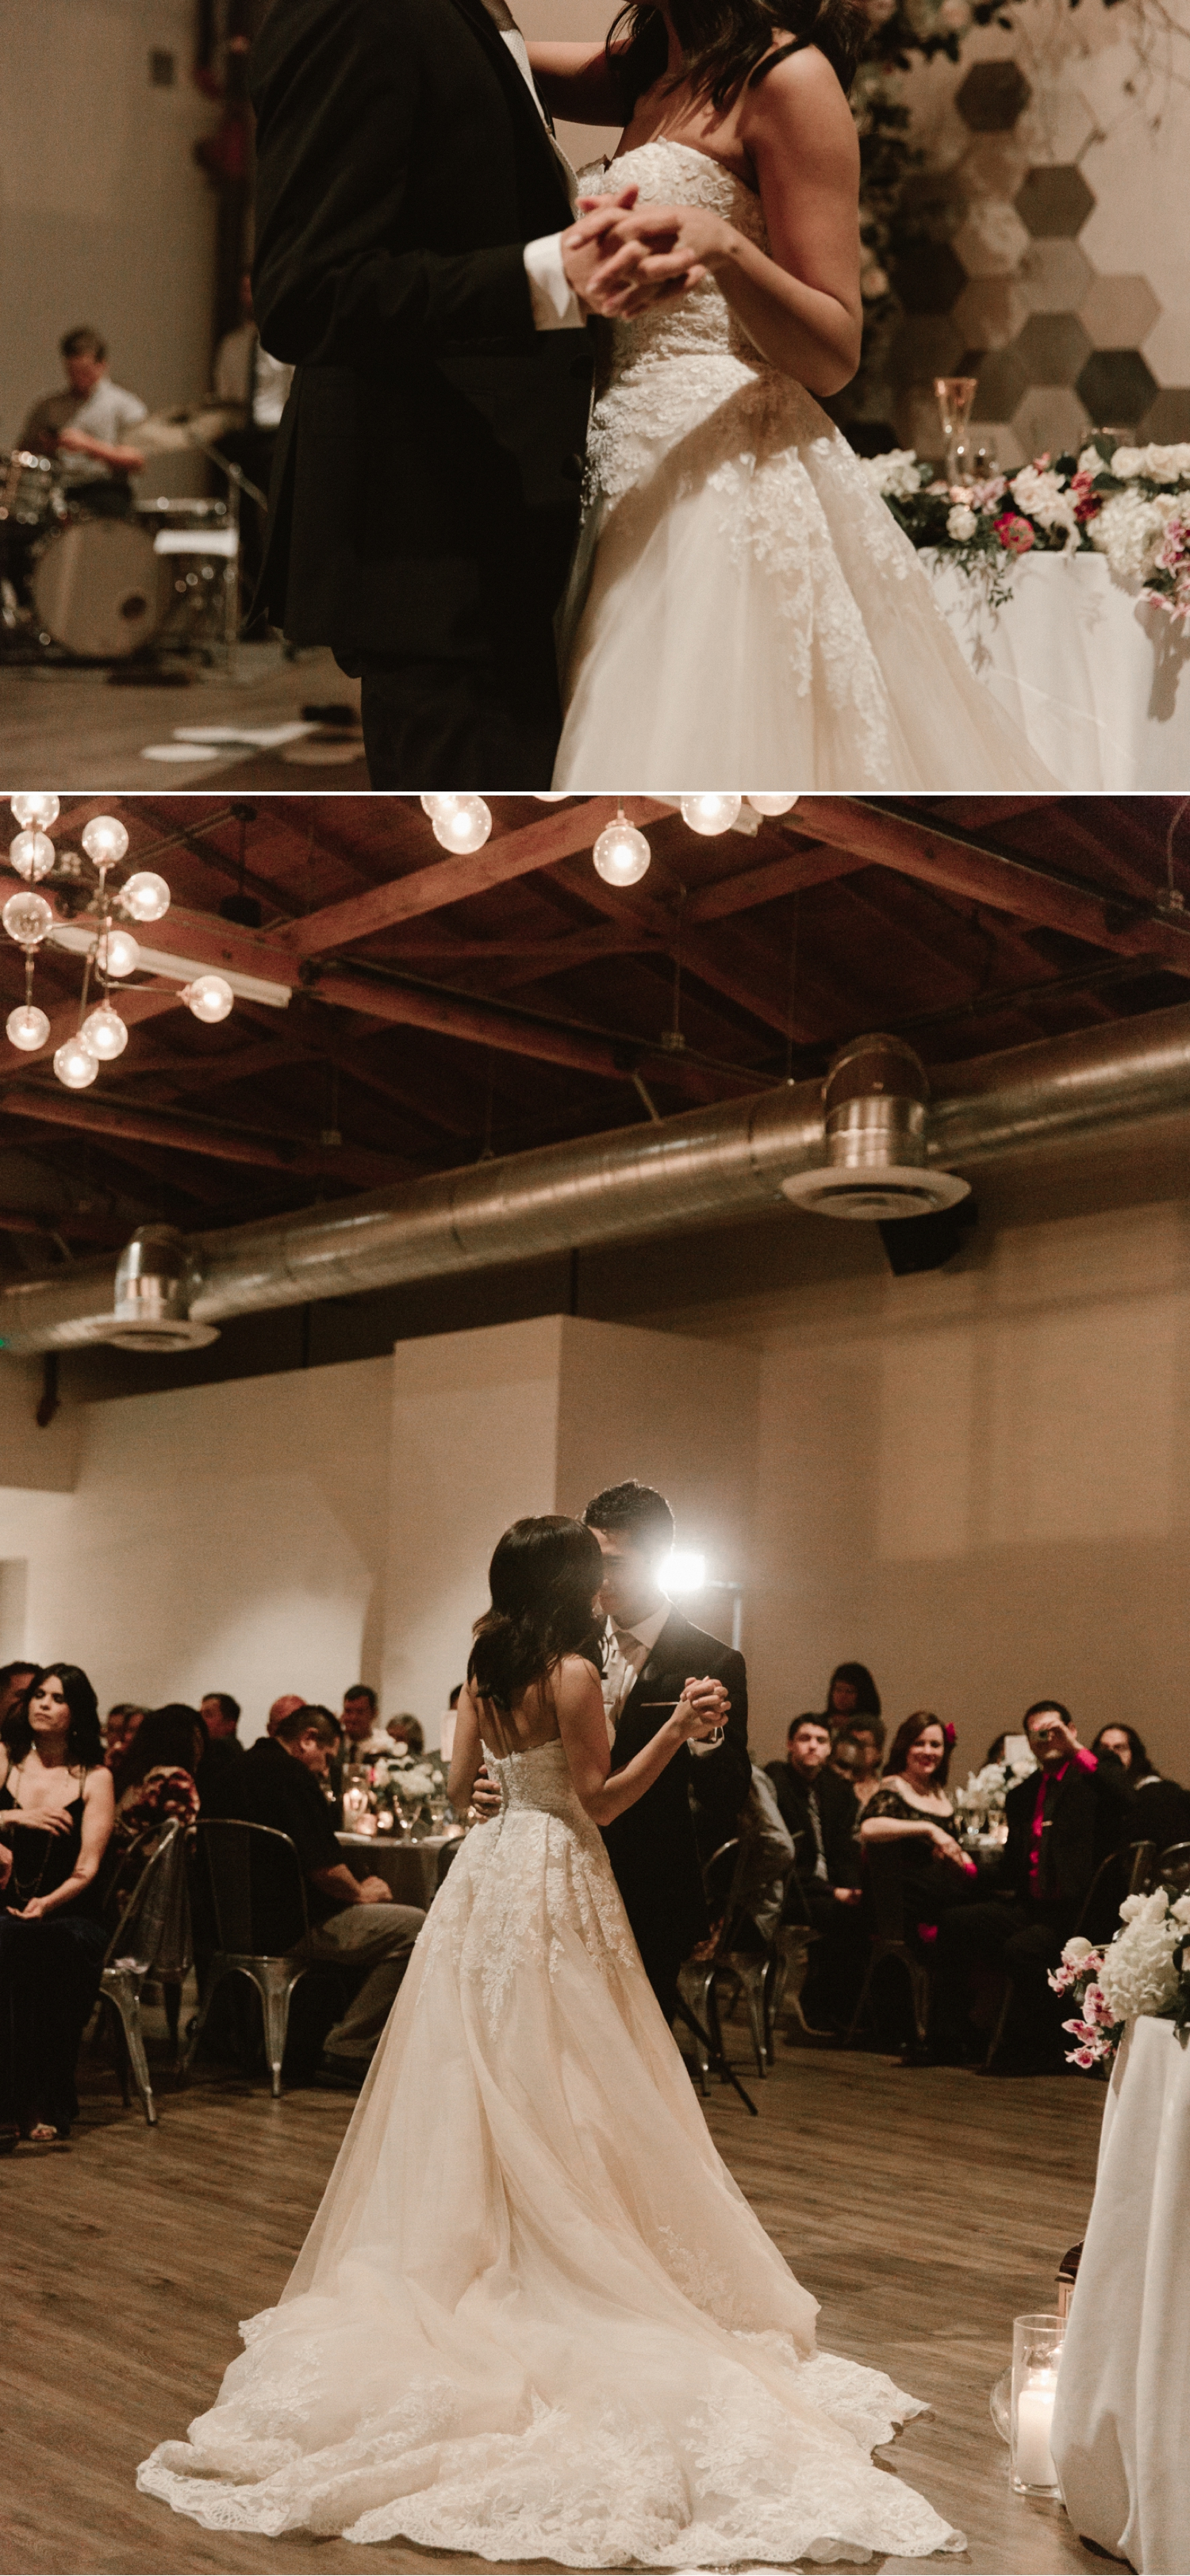 Bride and groom first dance, Indoor wedding reception at 1912 in Santa Ana by Paige Nelson